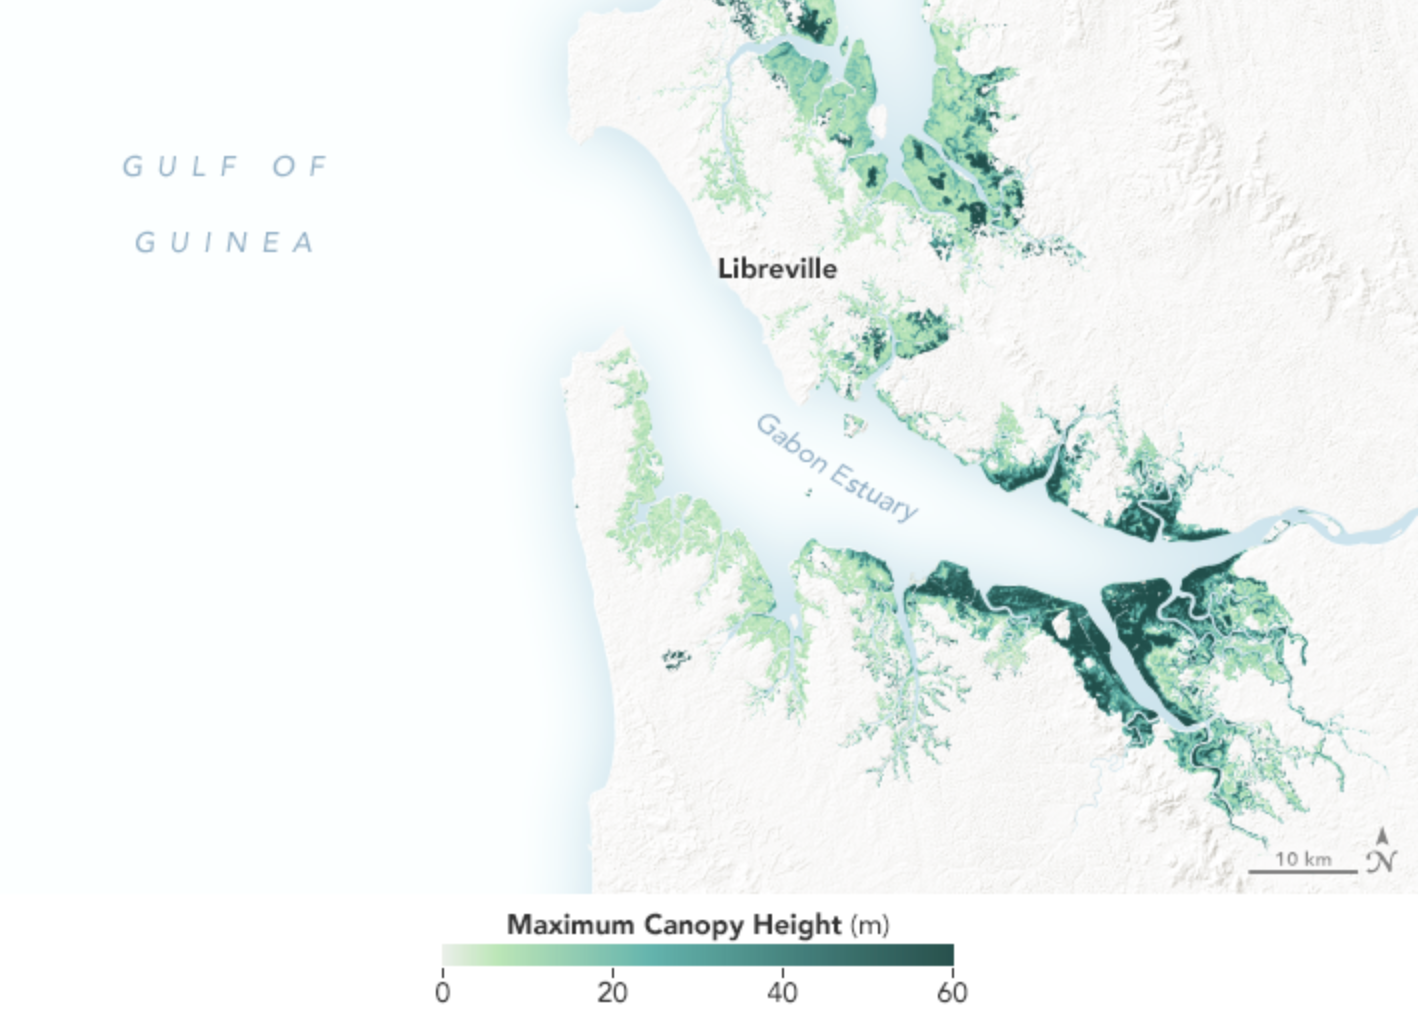 Figure shows mangrove tree heights in the the Gabon Estuary.